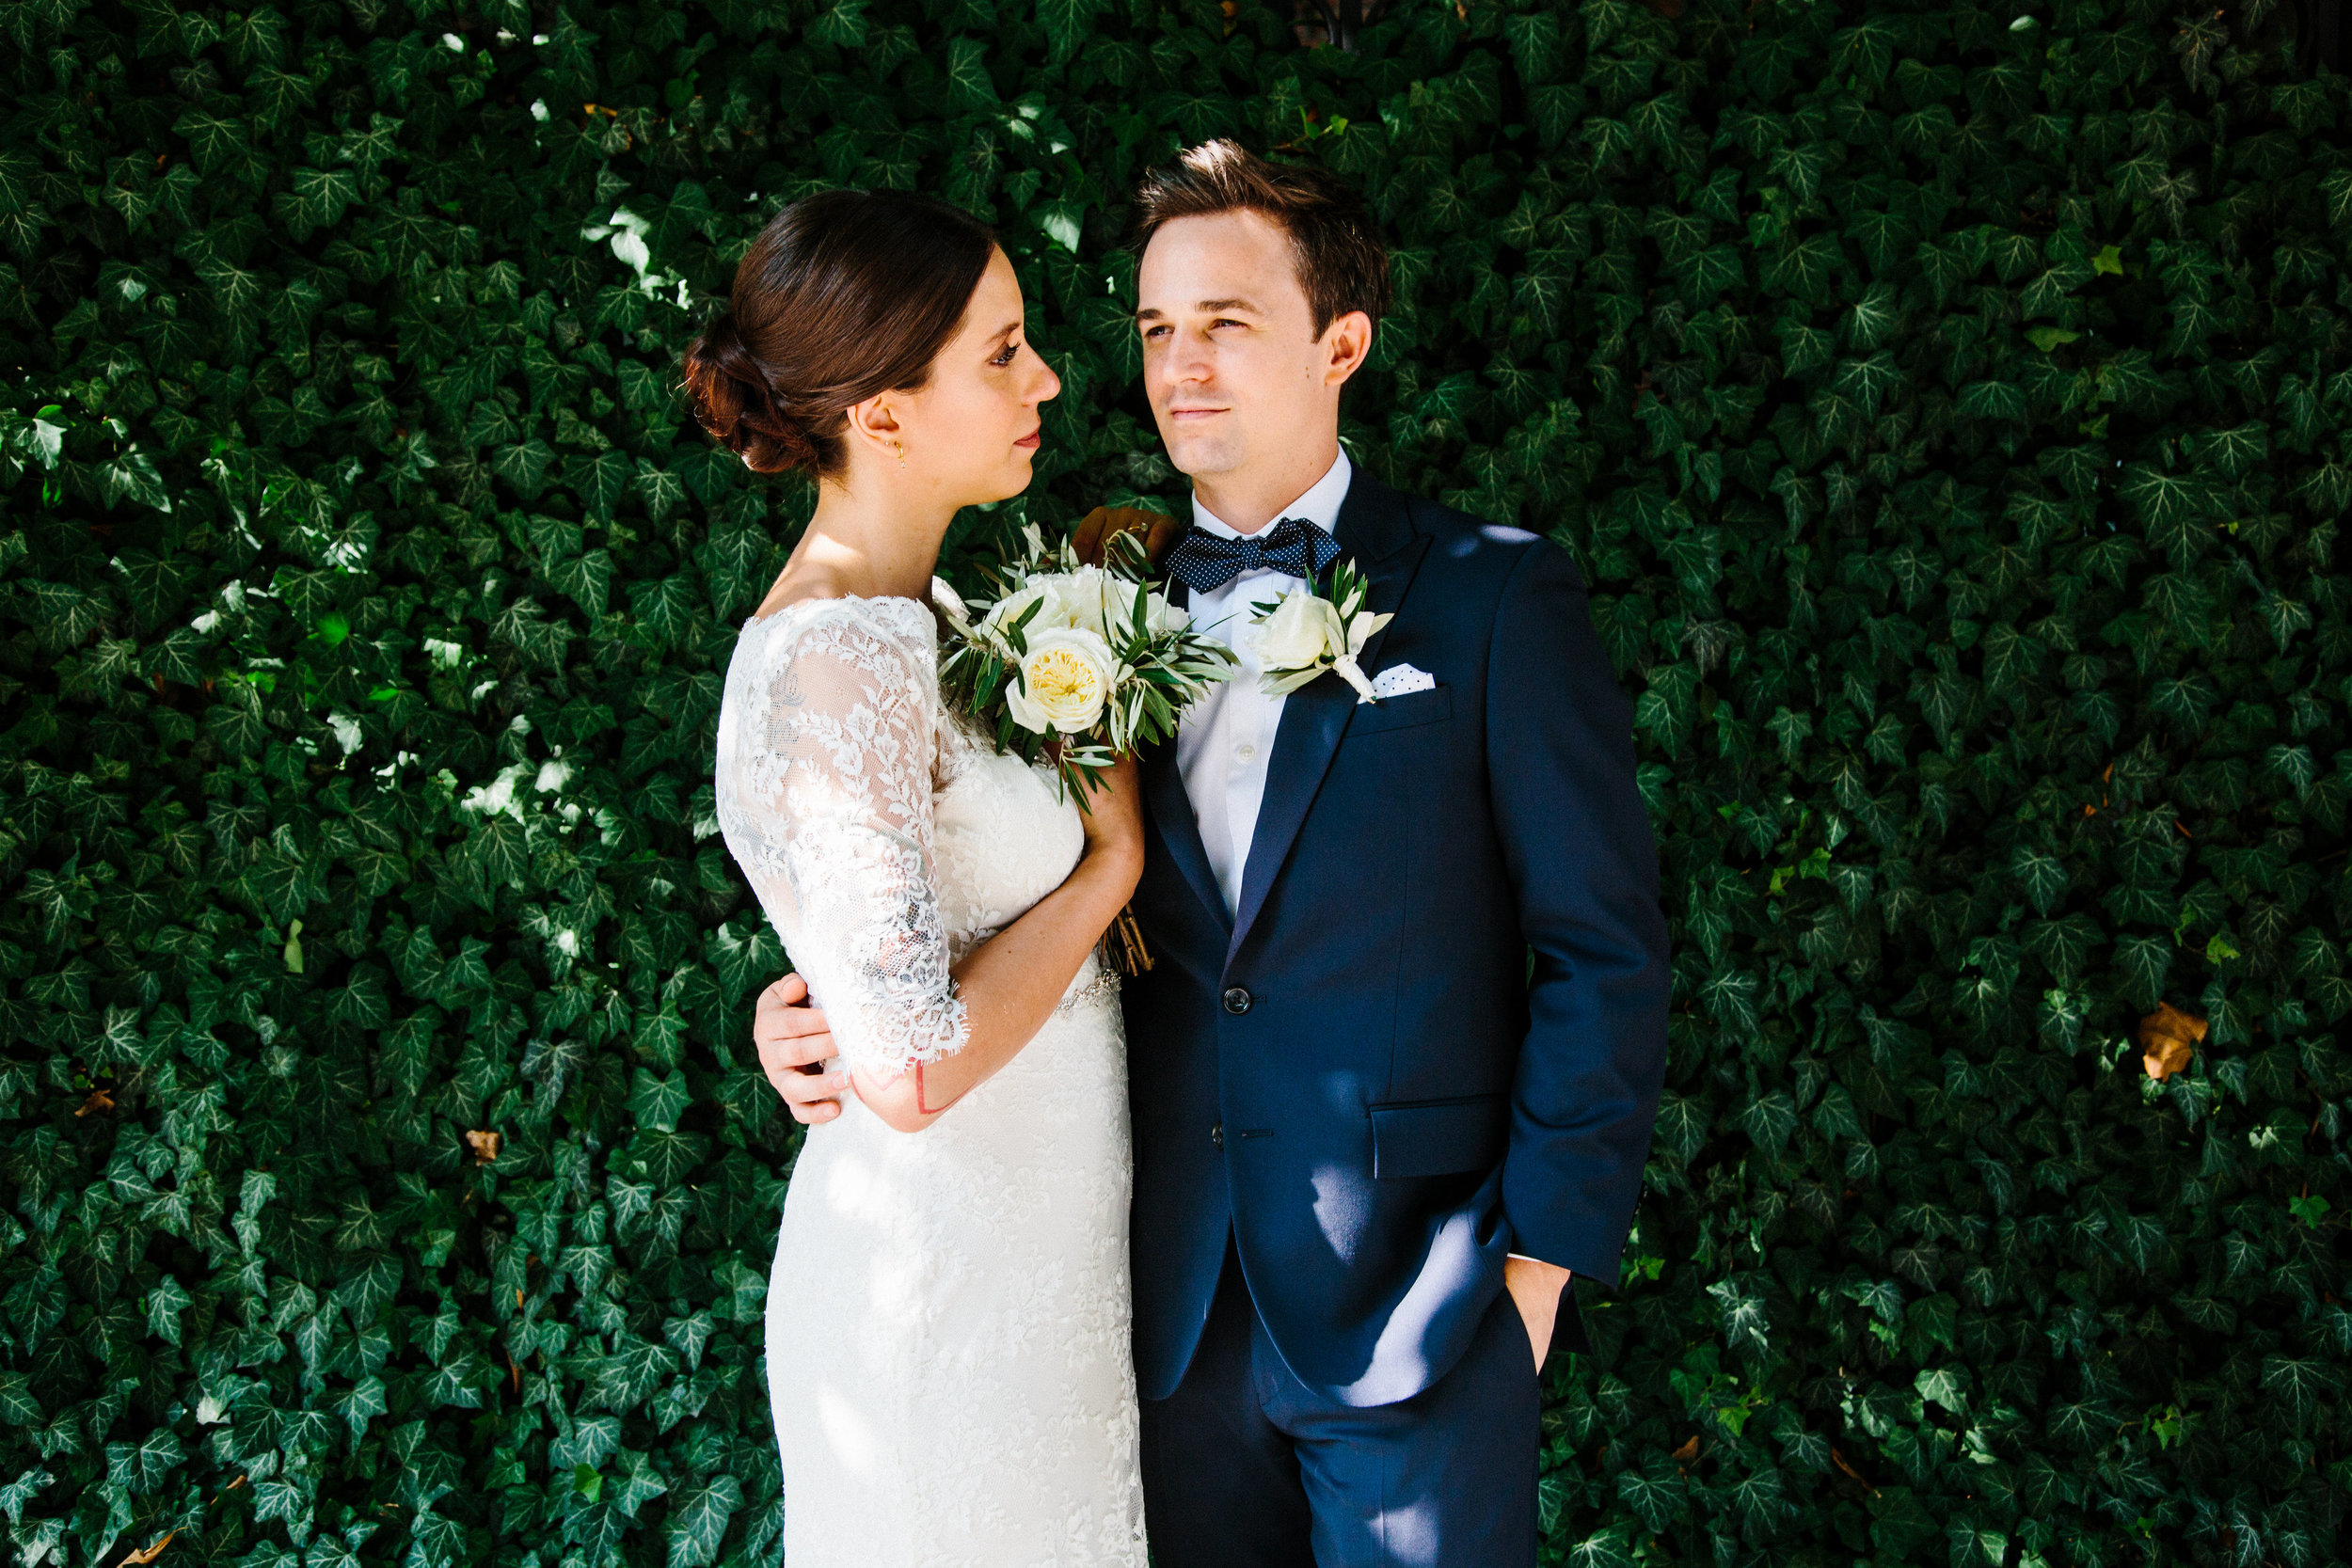 NYC WEDDING - Photo Credit: Moonstone Studio